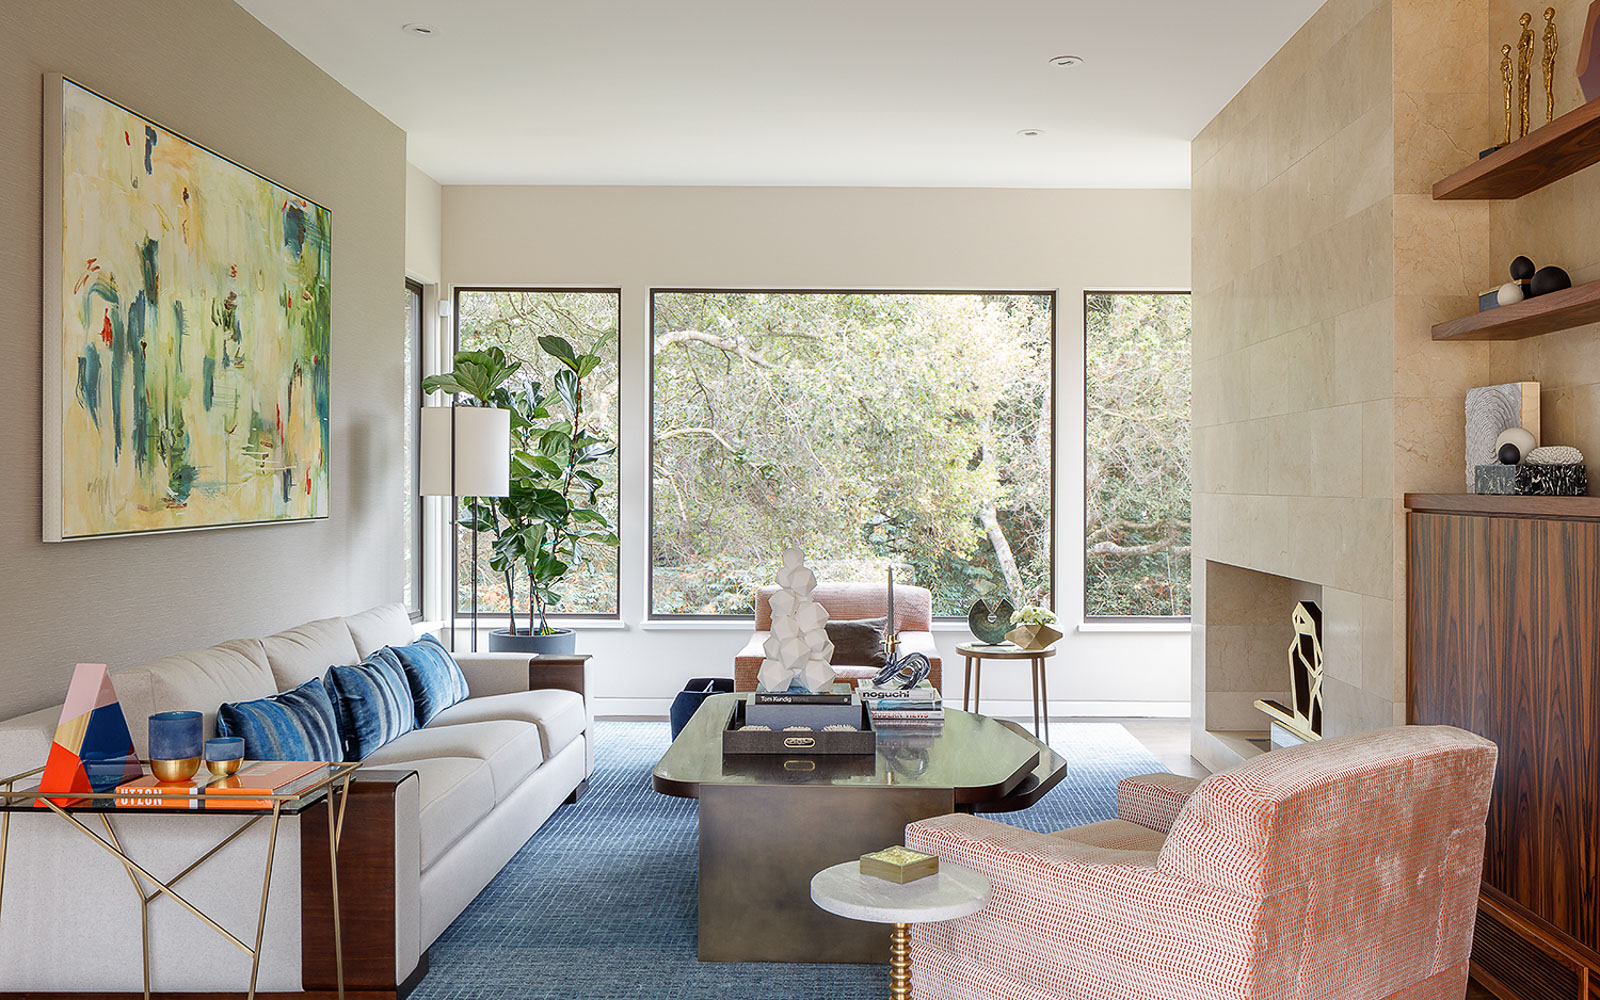 Modern chic interior designed living room, Palo Alto interior designer.